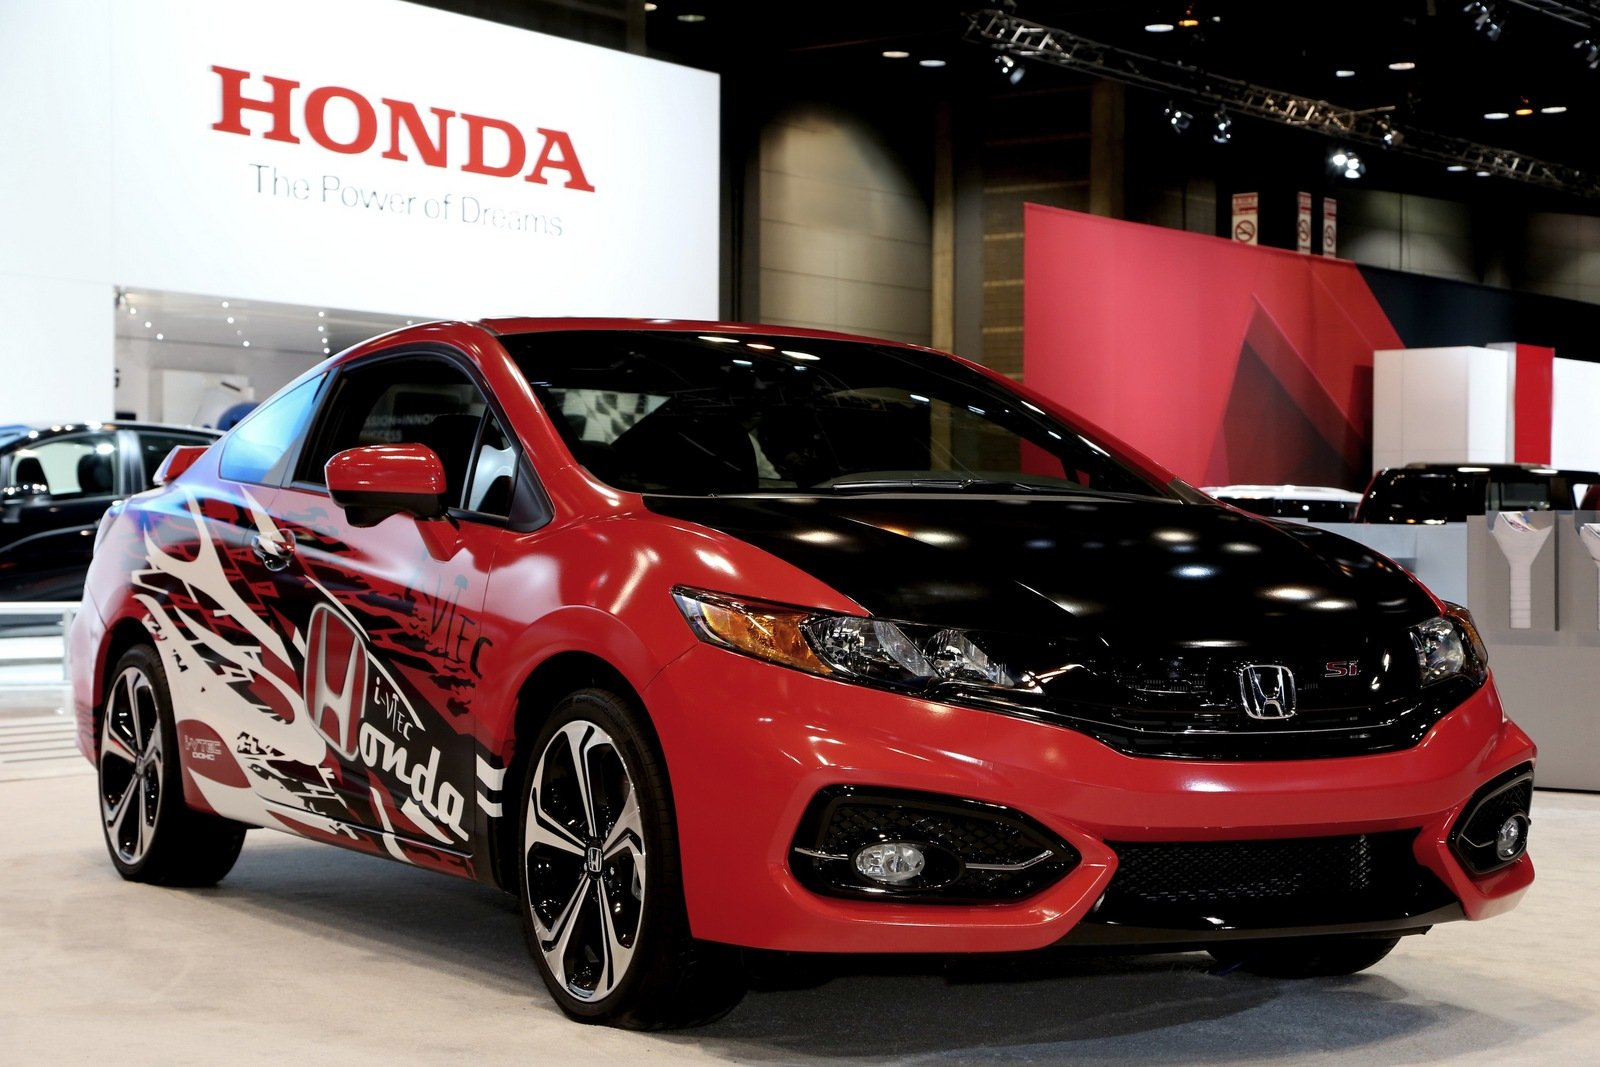 2014 honda civic si coupe forza edition review top speed. Black Bedroom Furniture Sets. Home Design Ideas